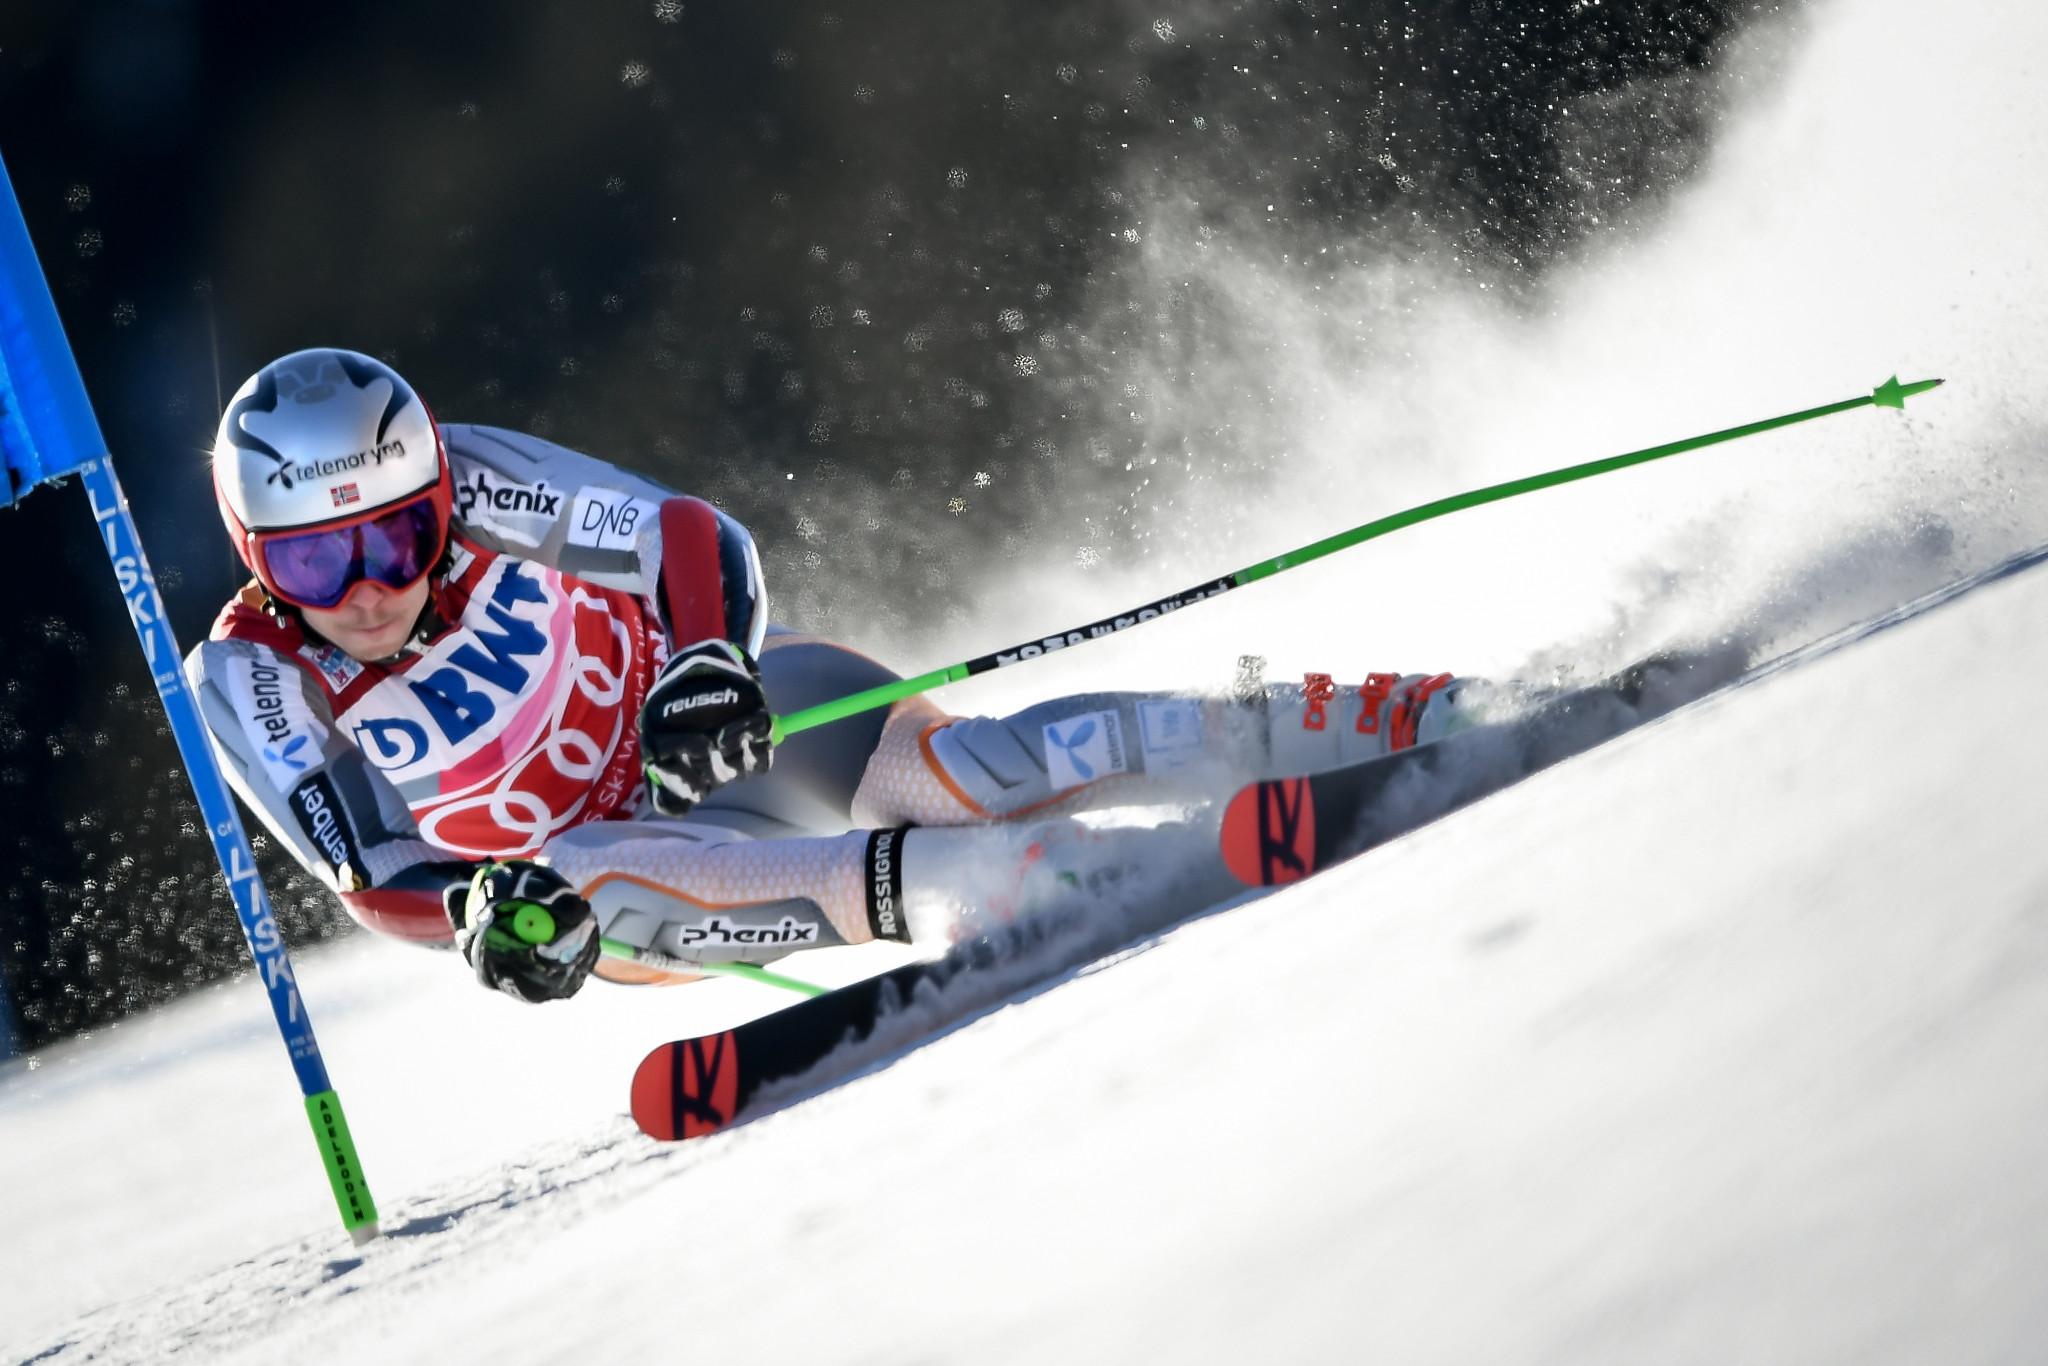 Kristoffersen retakes FIS Alpine Skiing World Cup lead after third place in Adelboden